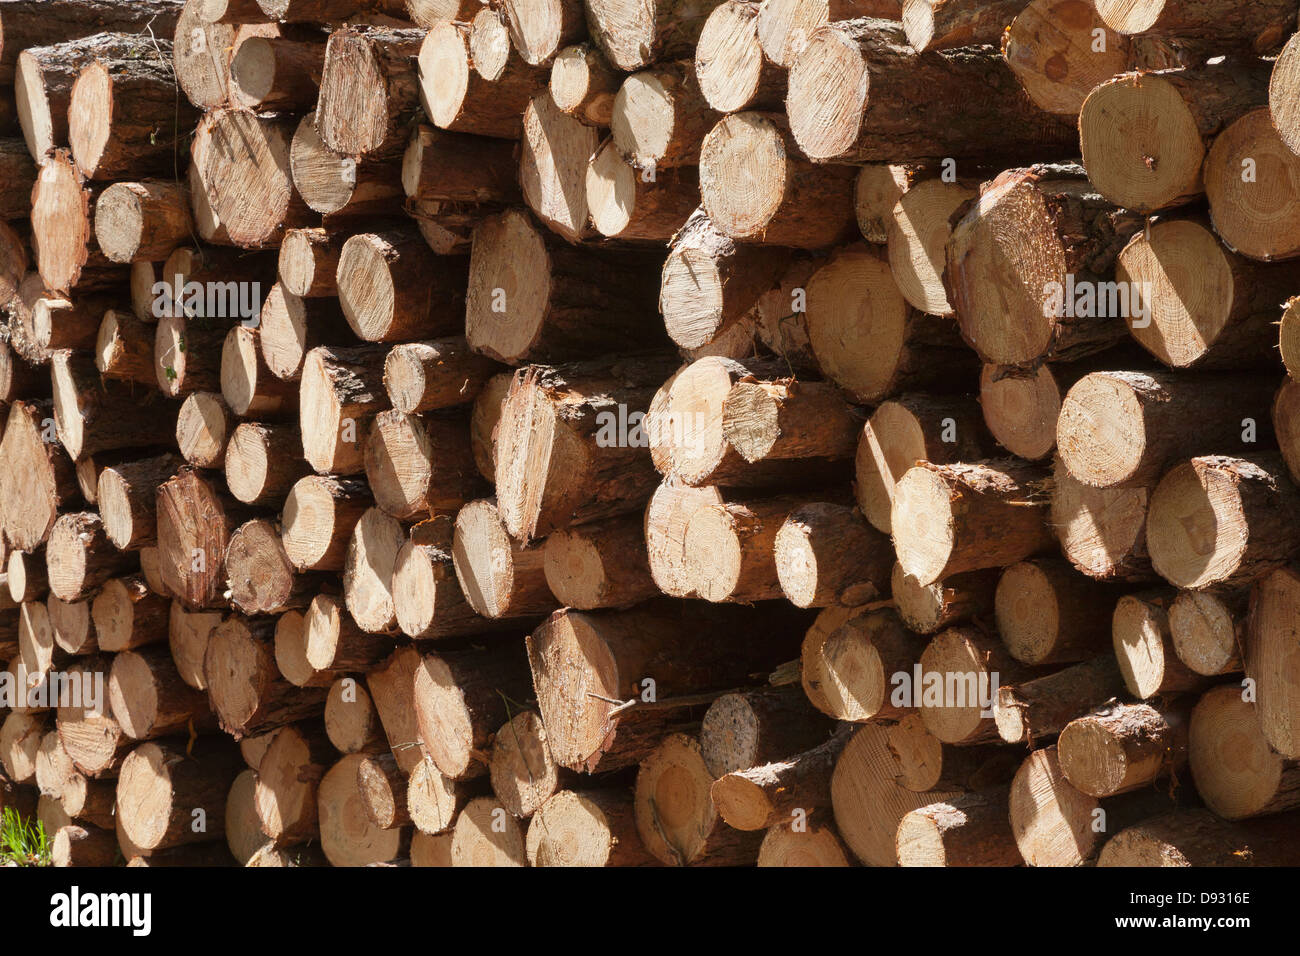 felled cut recent cut pine pinus sylvestris logs - Stock Image